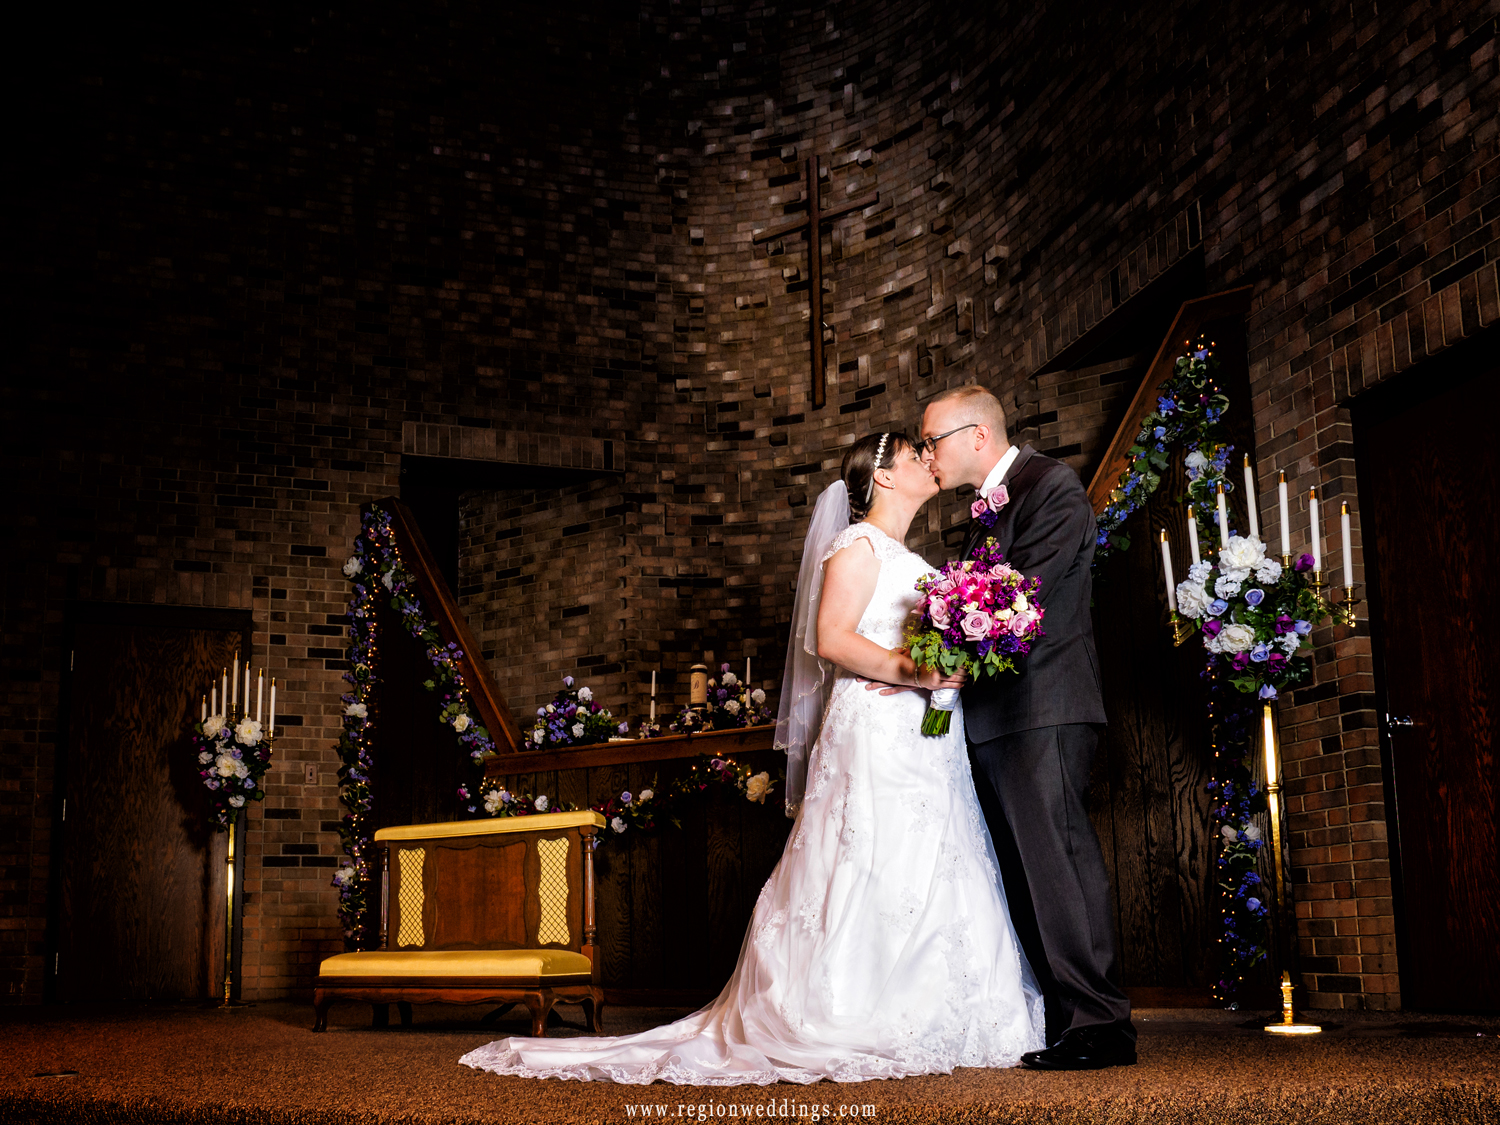 The bride and groom kiss on the altar at First Christian Church in Crown Point.